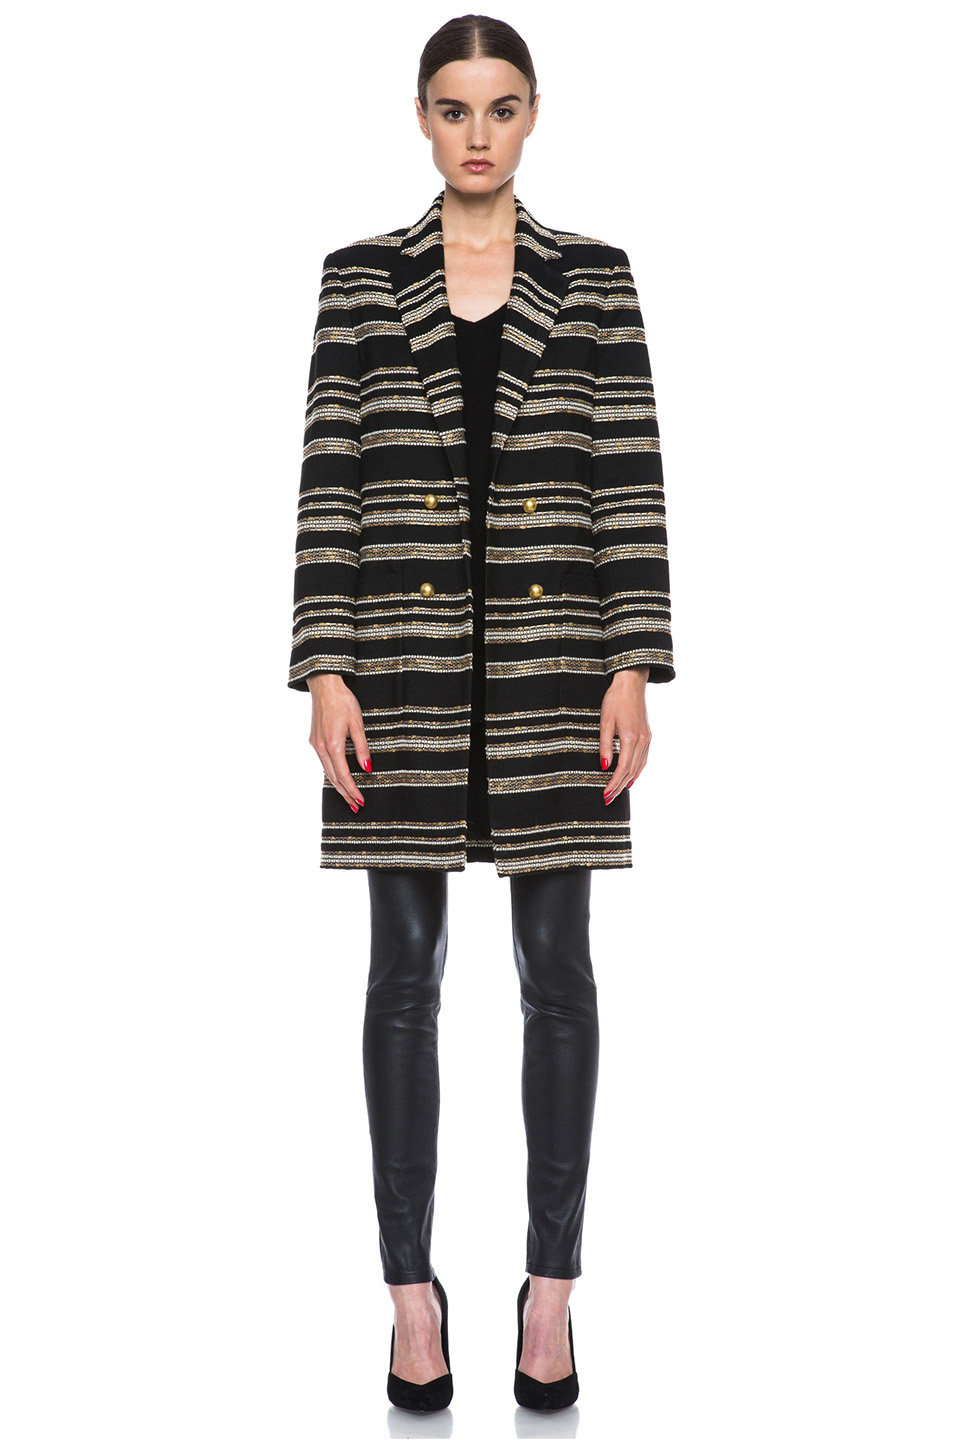 Jenni Kayne|Metallic Stripe Coat in Black & White & Gold